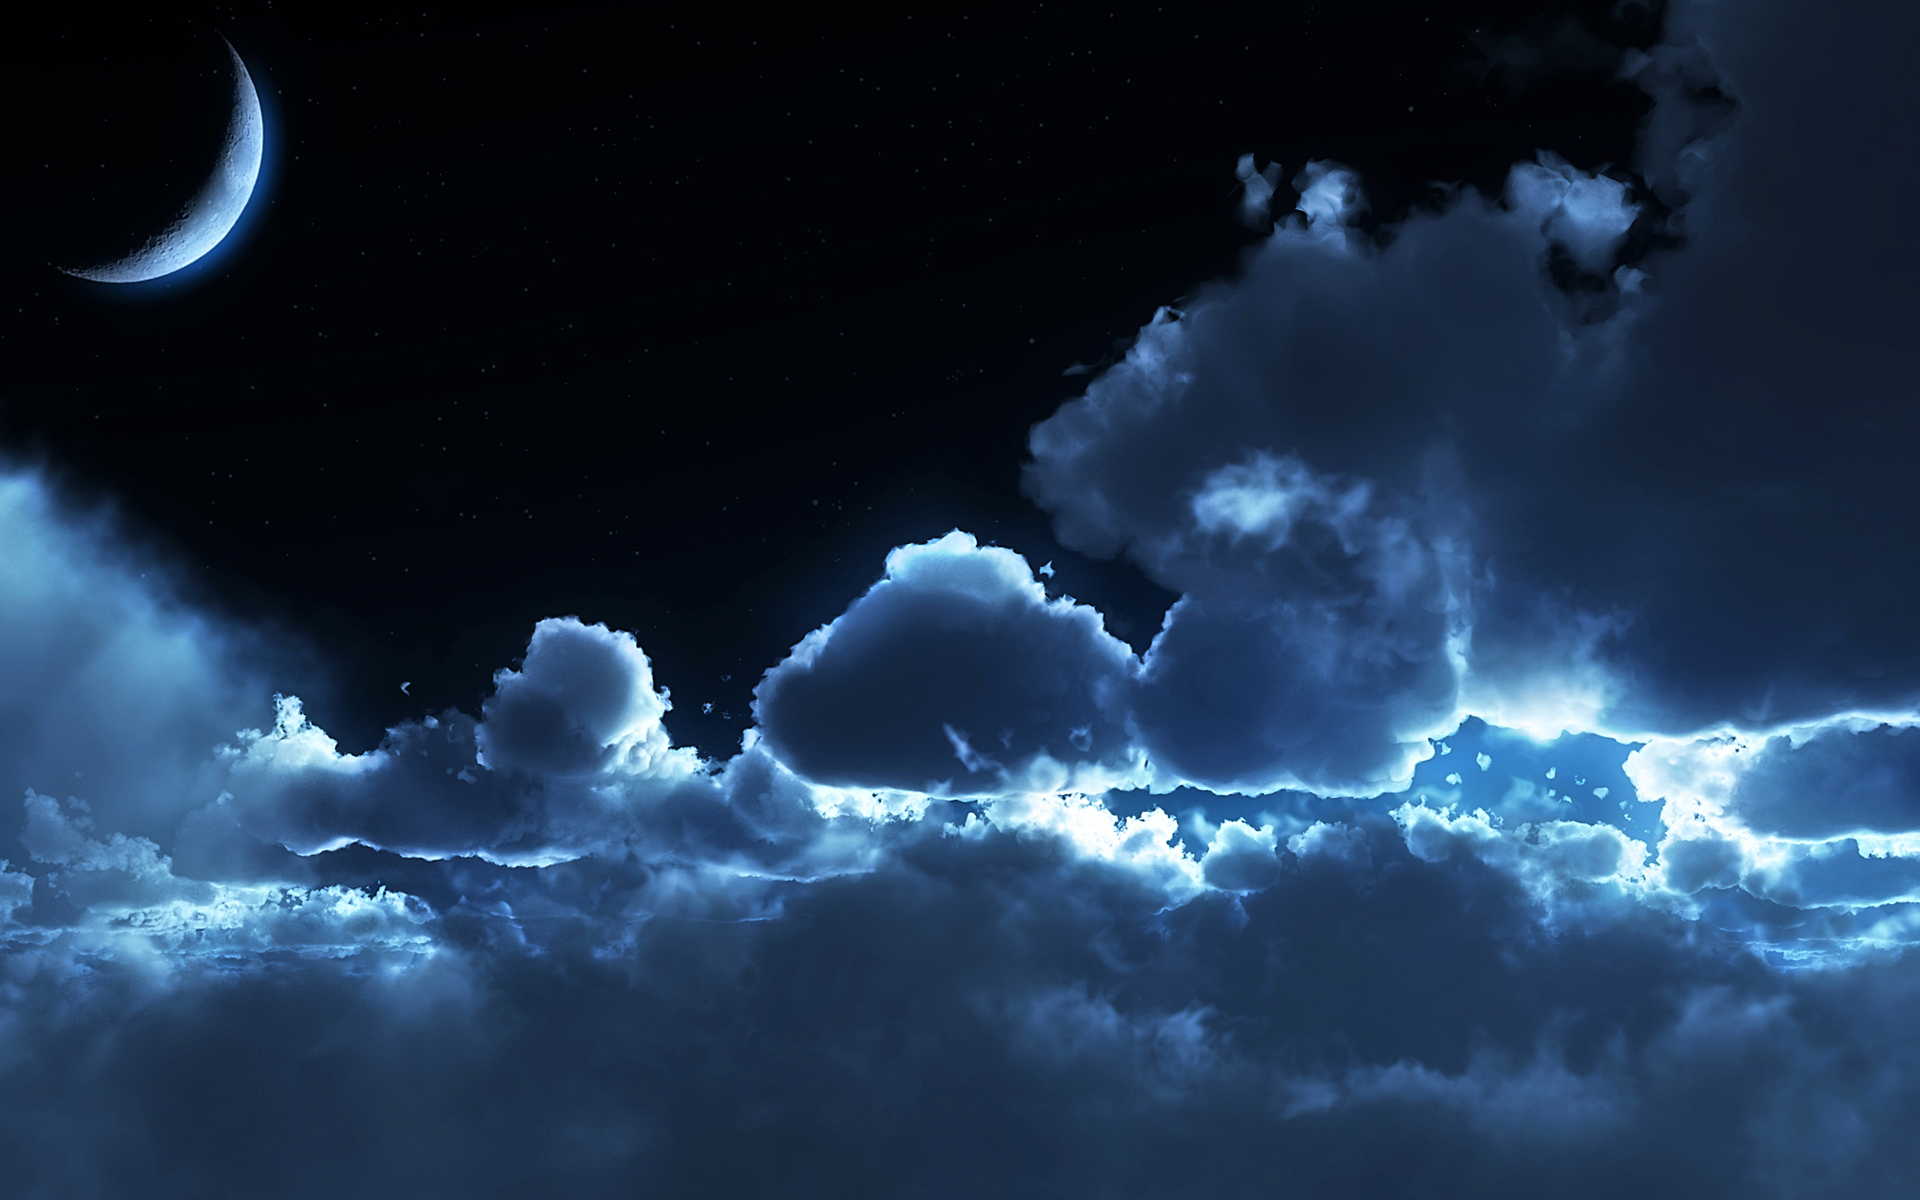 Good Wallpaper High Resolution Night Sky - wallpaper  Perfect Image Reference_911348.jpg